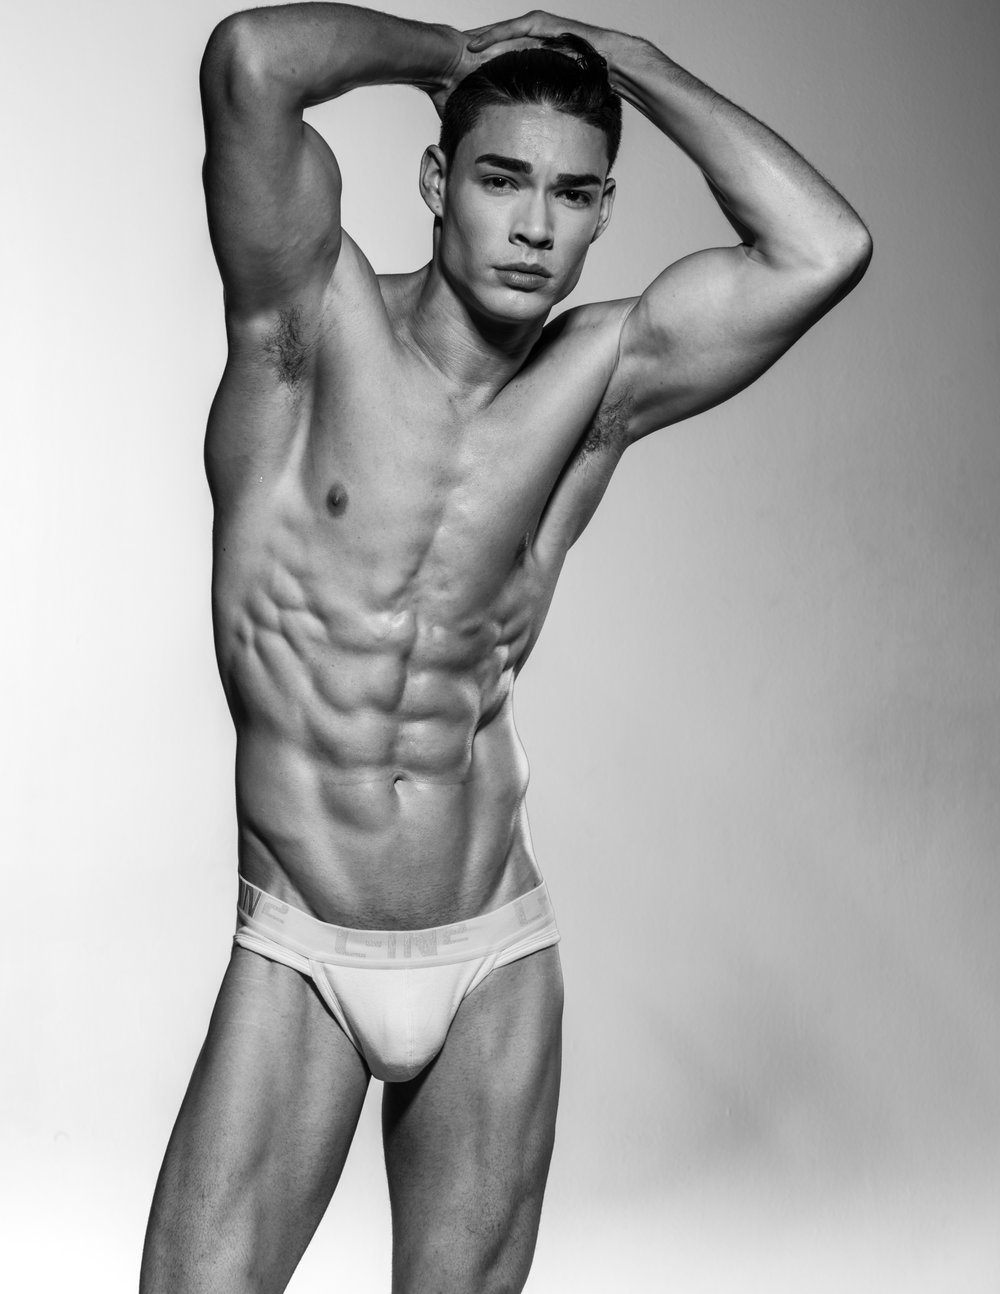 Jimmy Perez in bw by Juliana Soo (3).jpg